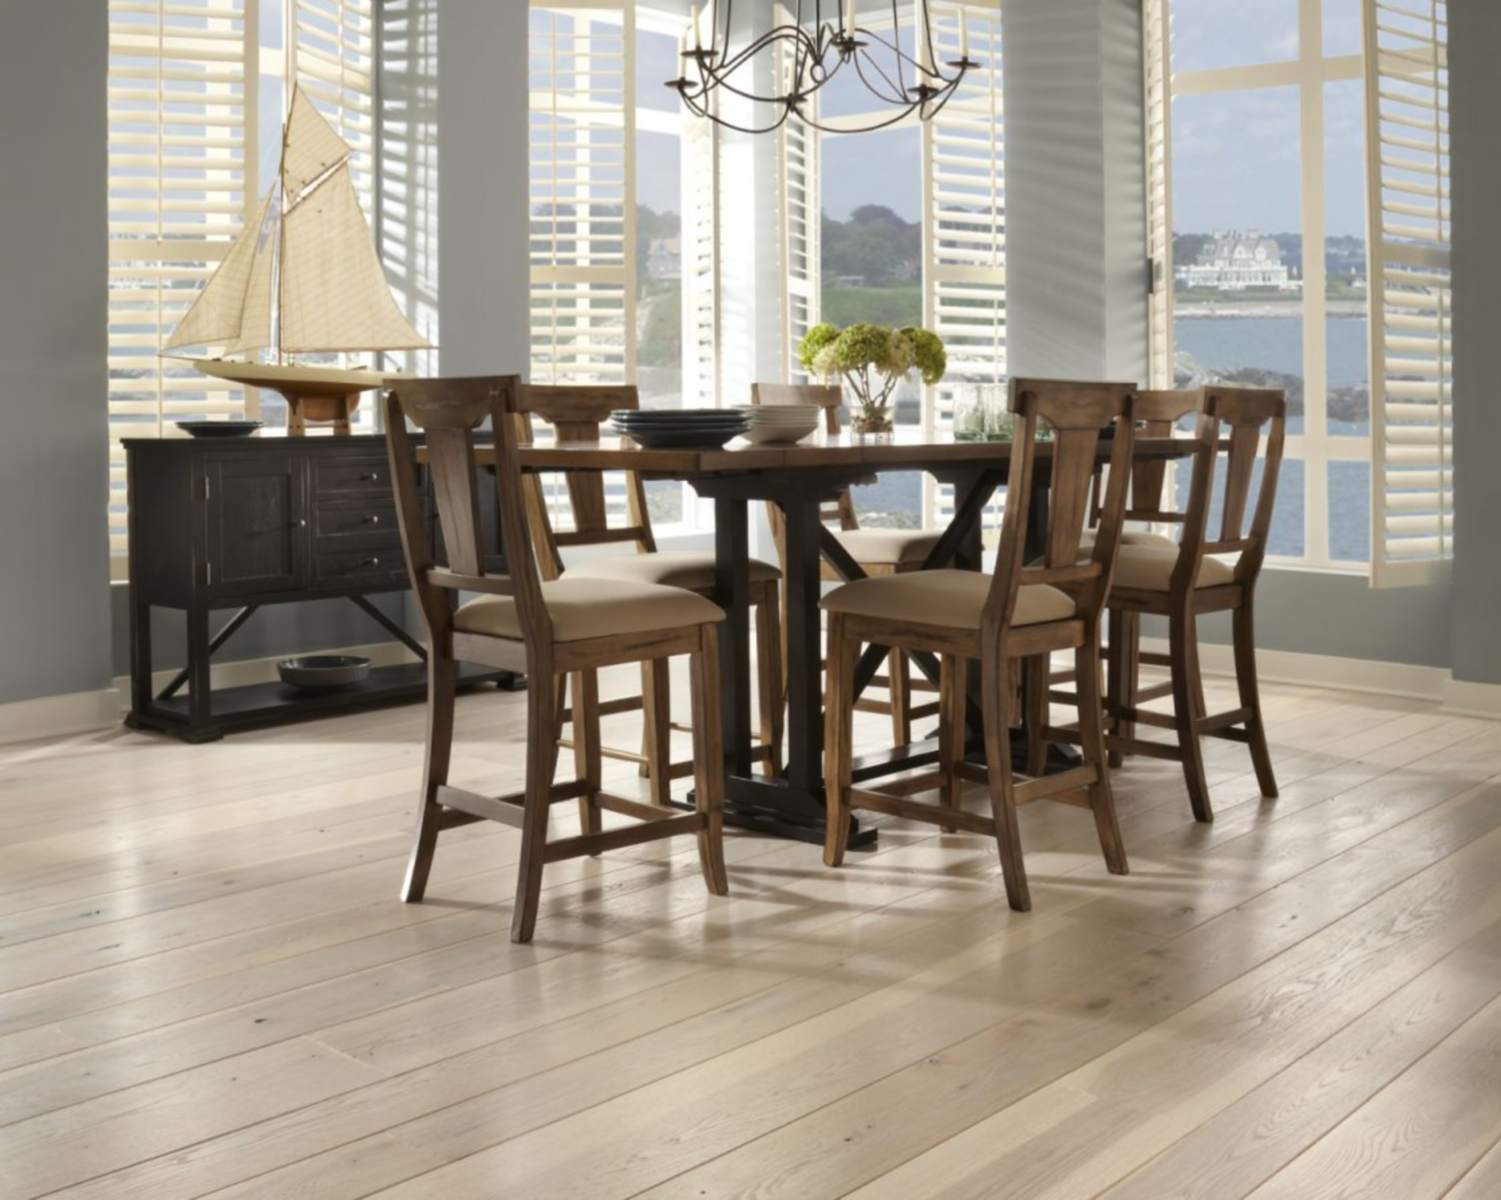 maple leaf engineered hardwood flooring of top 5 brands for solid hardwood flooring in a dining room with carlisle hickorys wide plank flooring